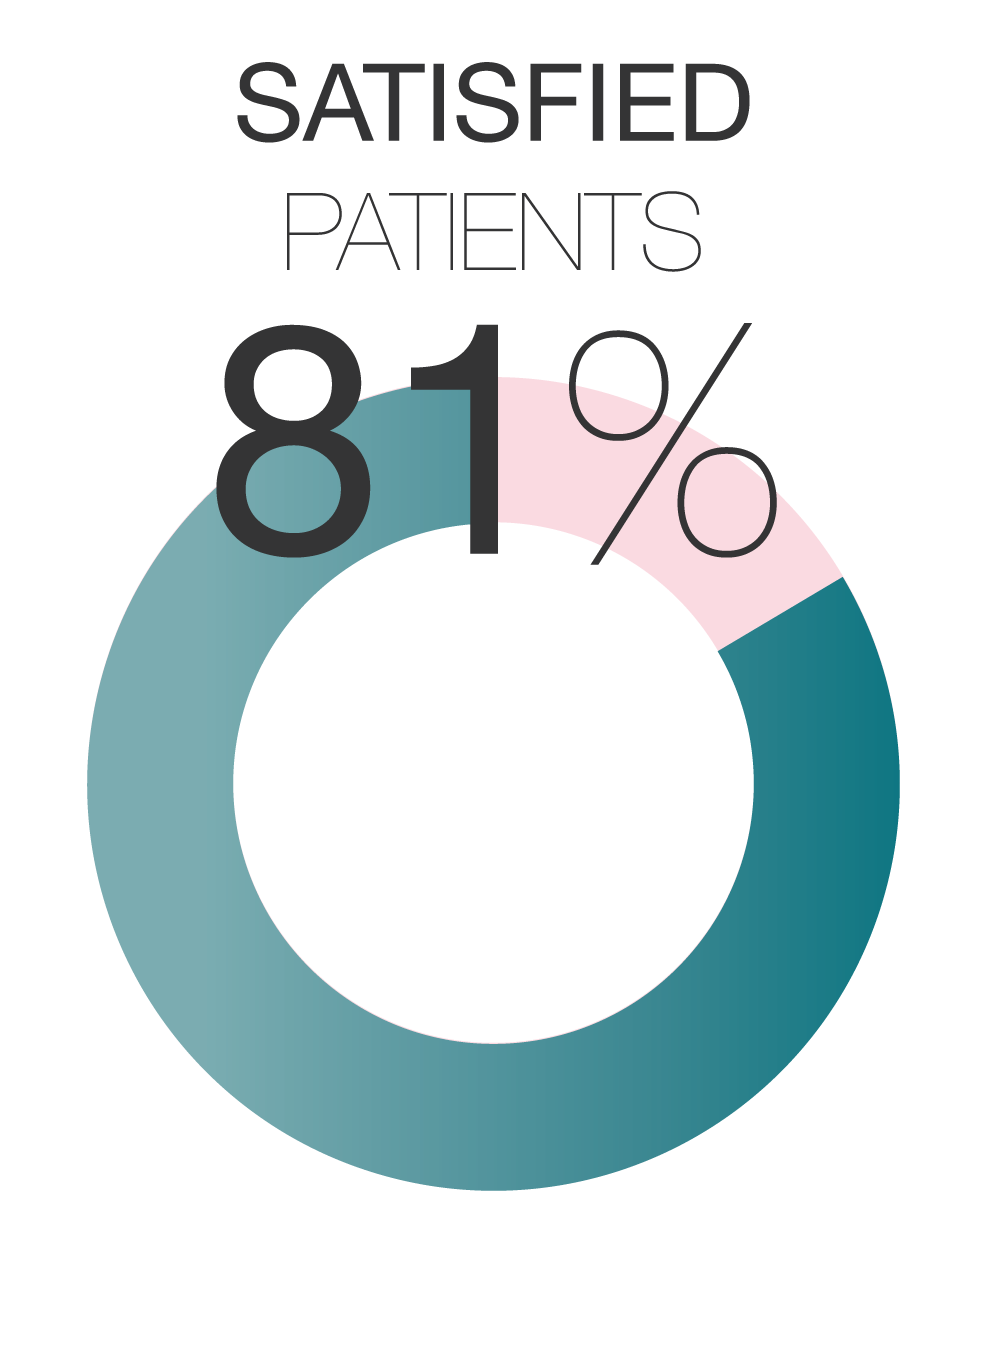 Cefaly : Satisfied patients: 81%